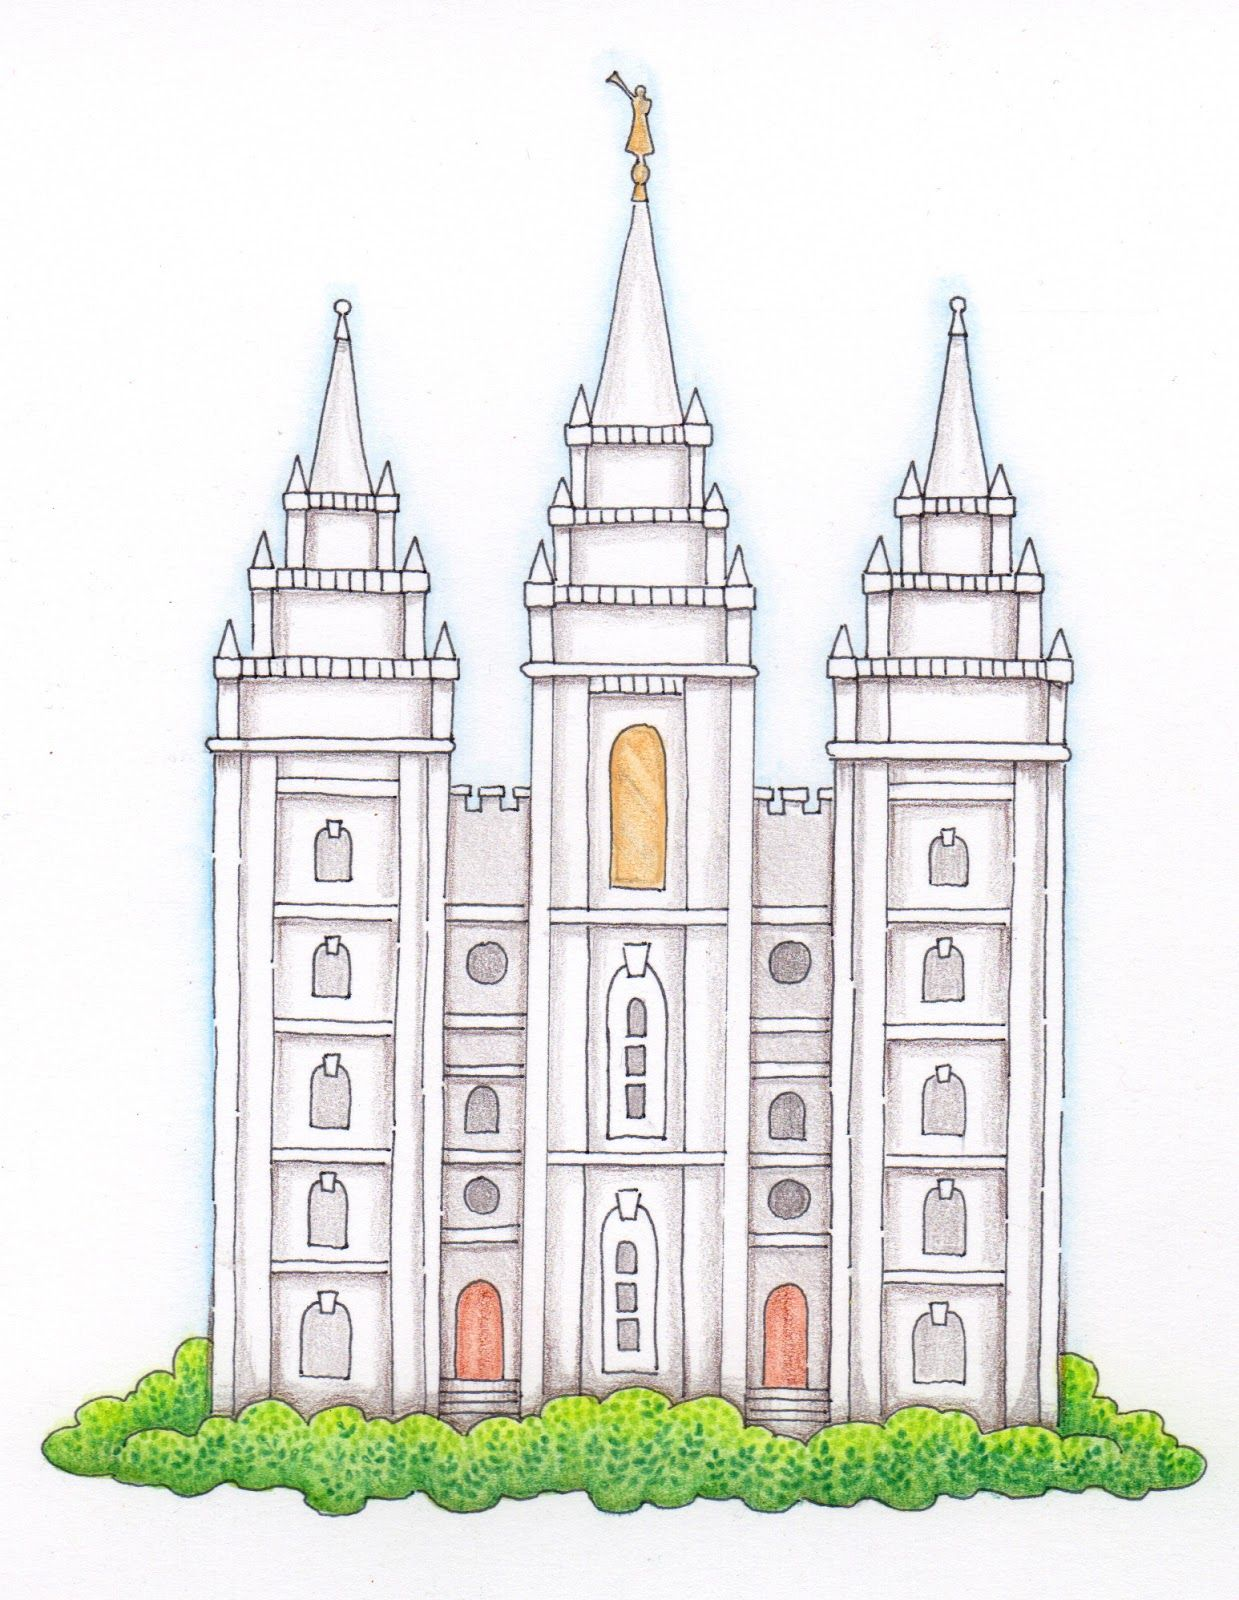 hight resolution of temple illustration click here to download temple illustration with i believe banner click here to download